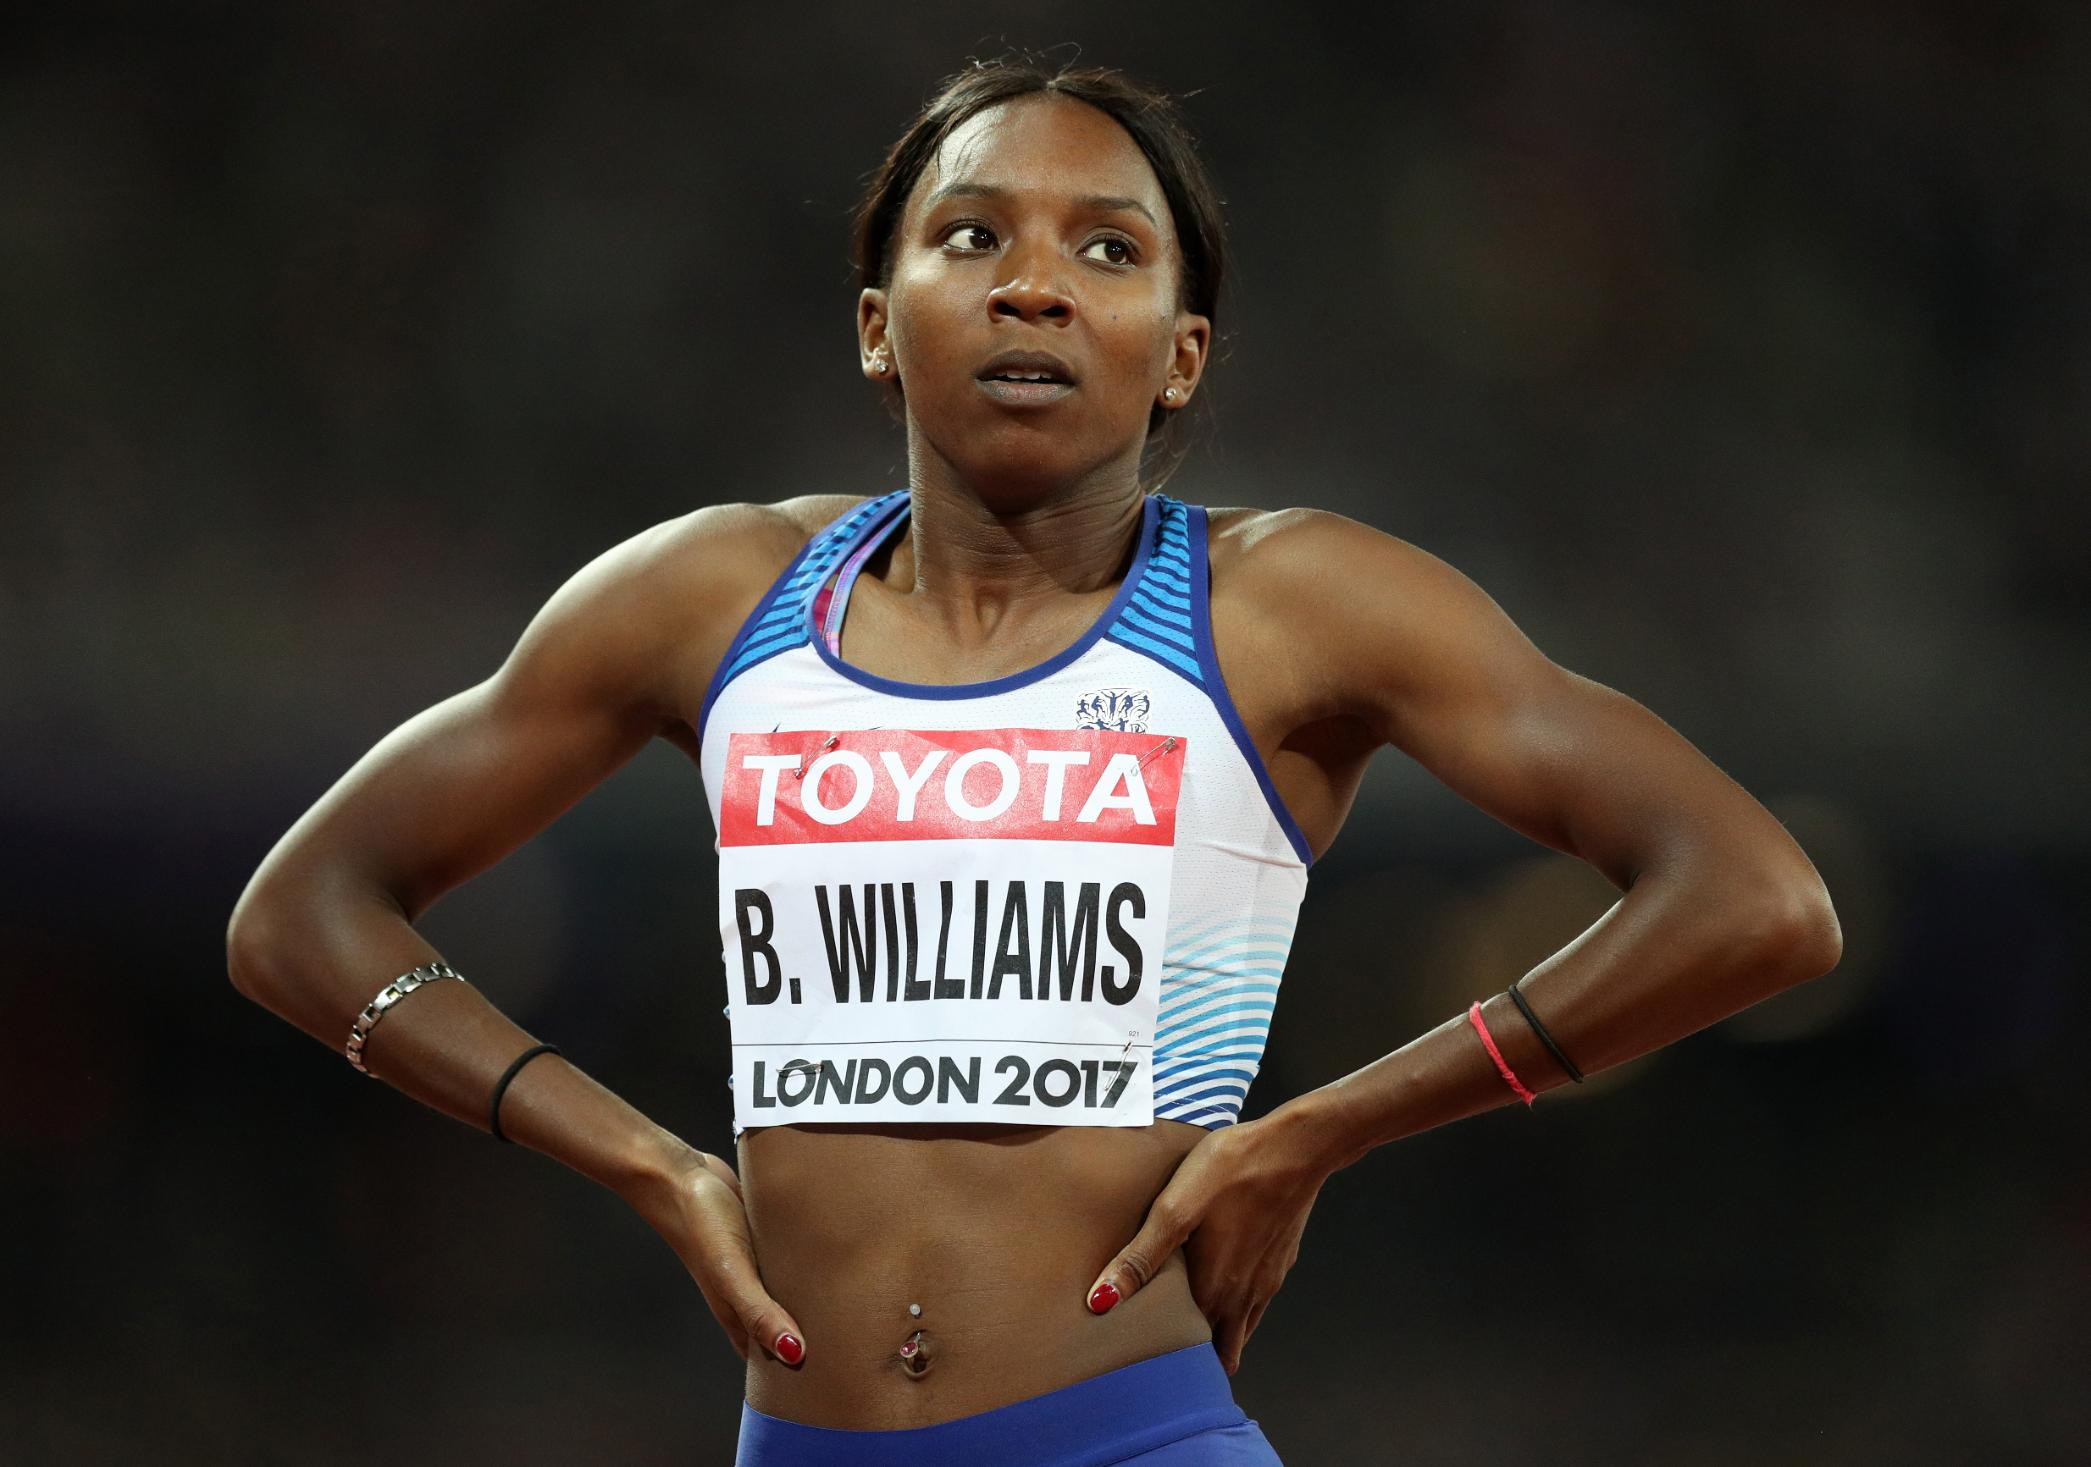 Team GB sprinter accuses police of 'racial profiling' after she and partner are stopped and searched in London